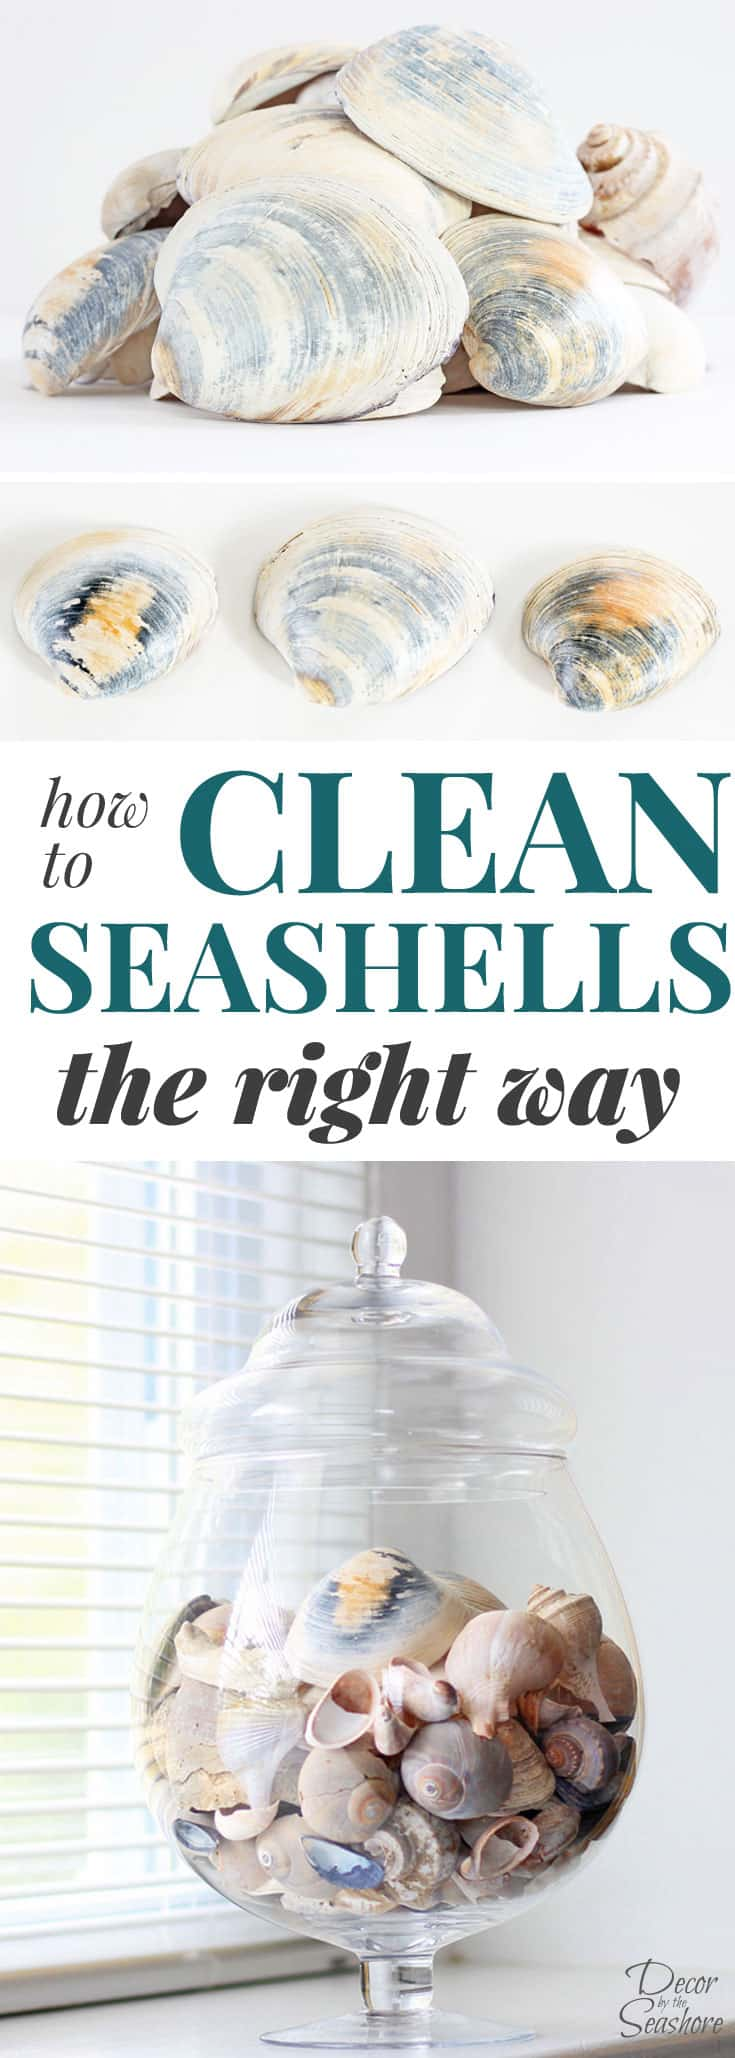 how to clean seashells the right way decor by the seashore